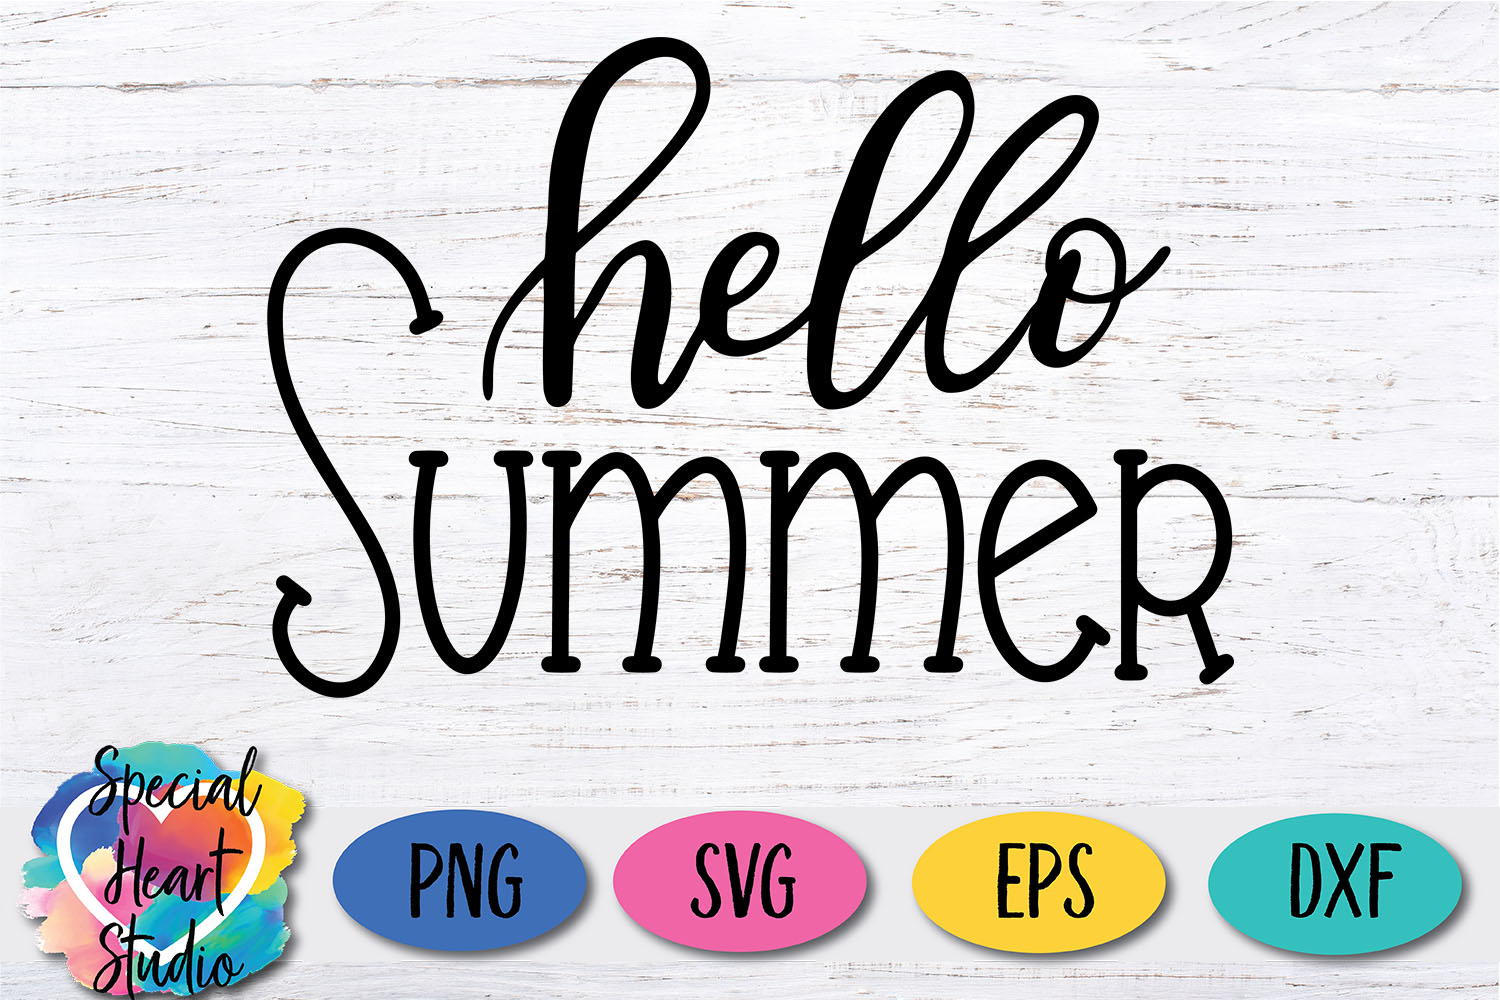 Hand lettered Hello Summer SVG - Home decor, sign, pillow example image 2